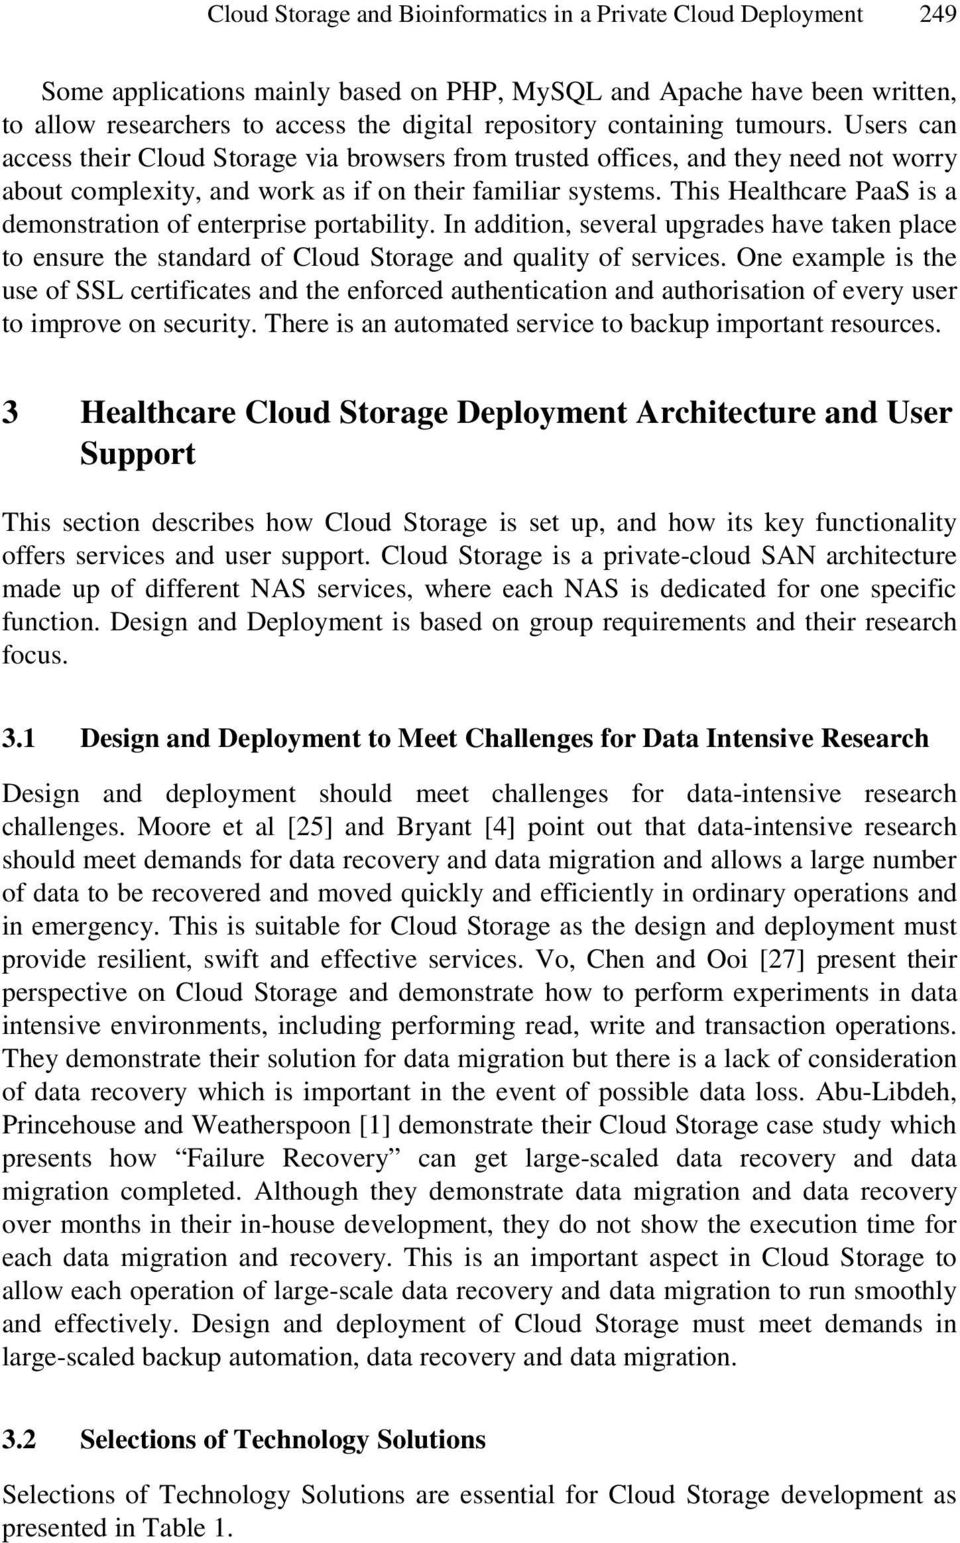 This Healthcare PaaS is a demonstration of enterprise portability. In addition, several upgrades have taken place to ensure the standard of Cloud Storage and quality of services.